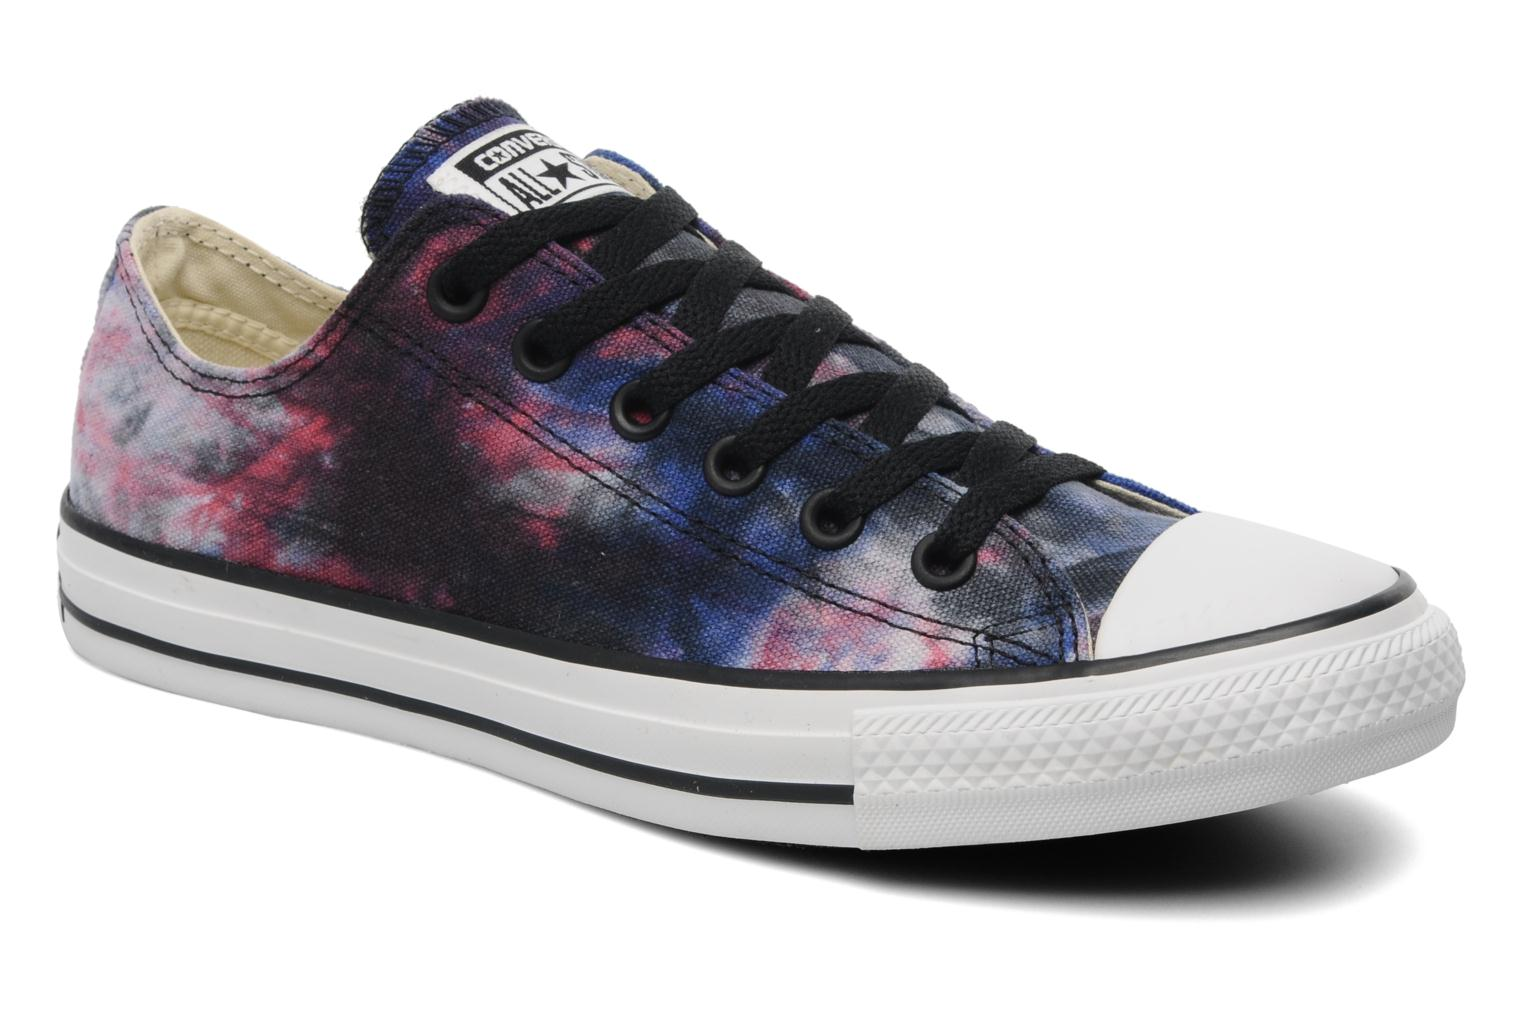 converse chuck all tie dye ox m trainers in multicolor at sarenza co uk 180714